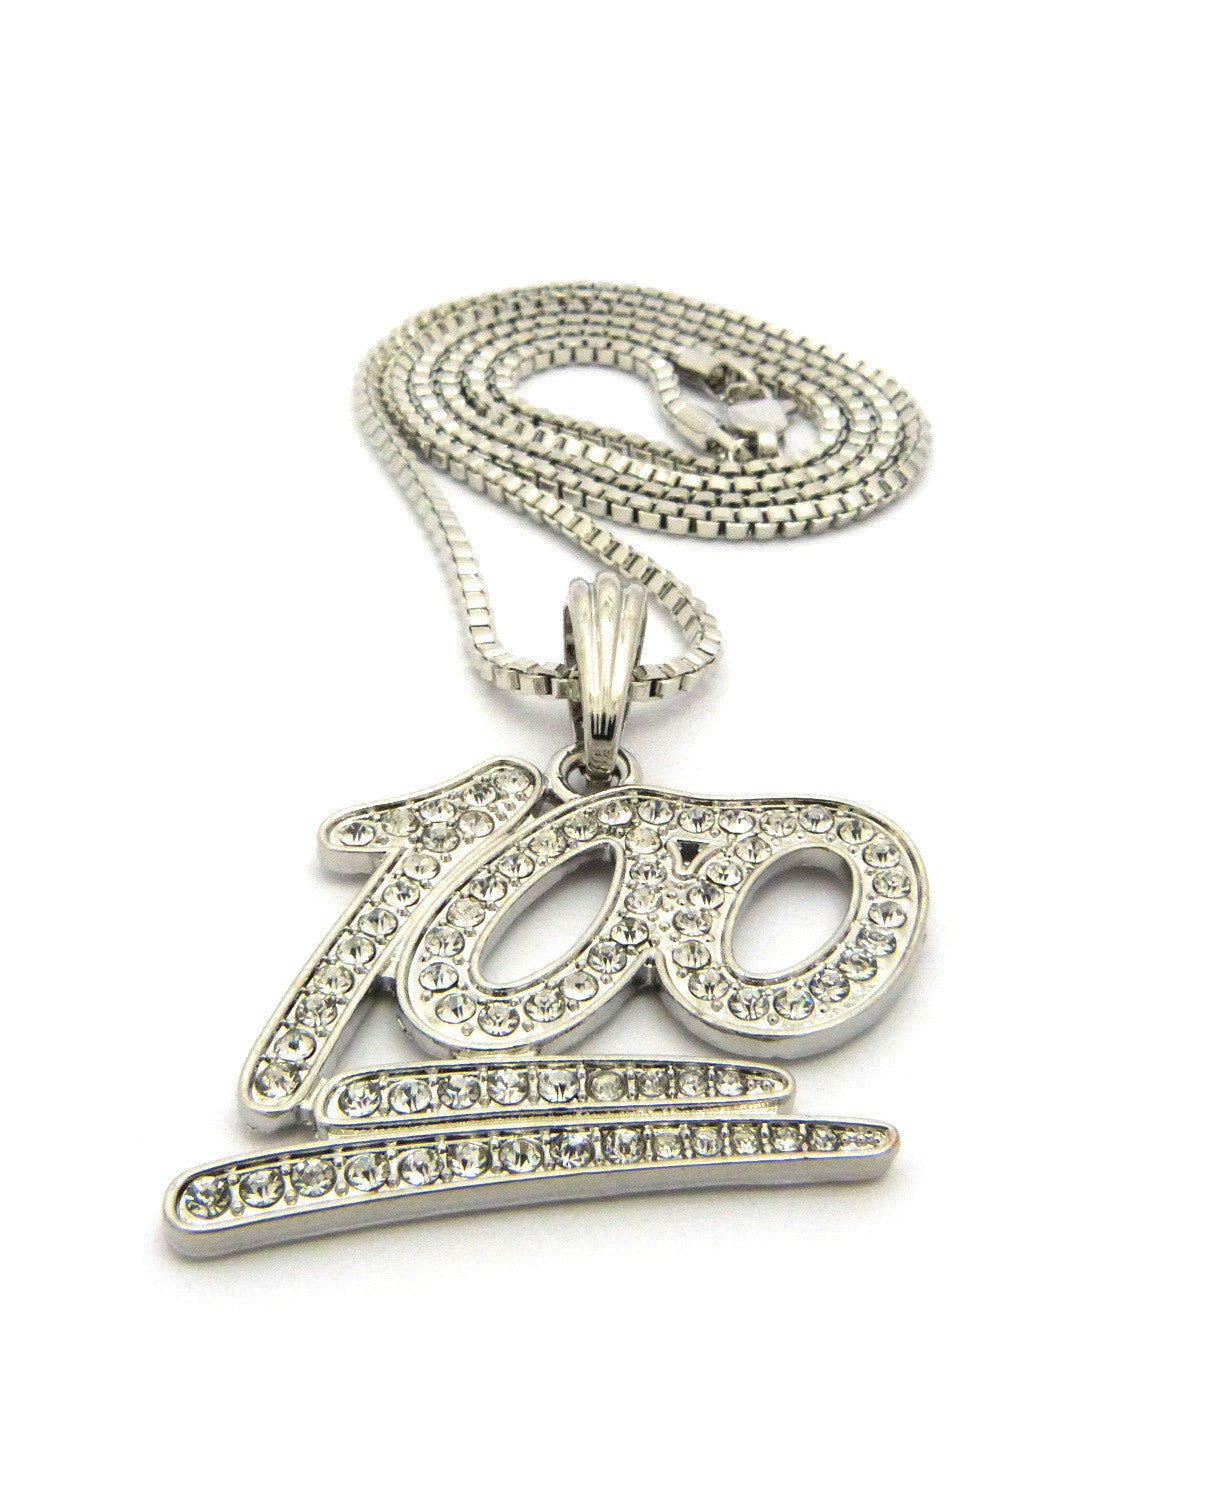 Iced Out Silver Plated Keep It 100 Pendant